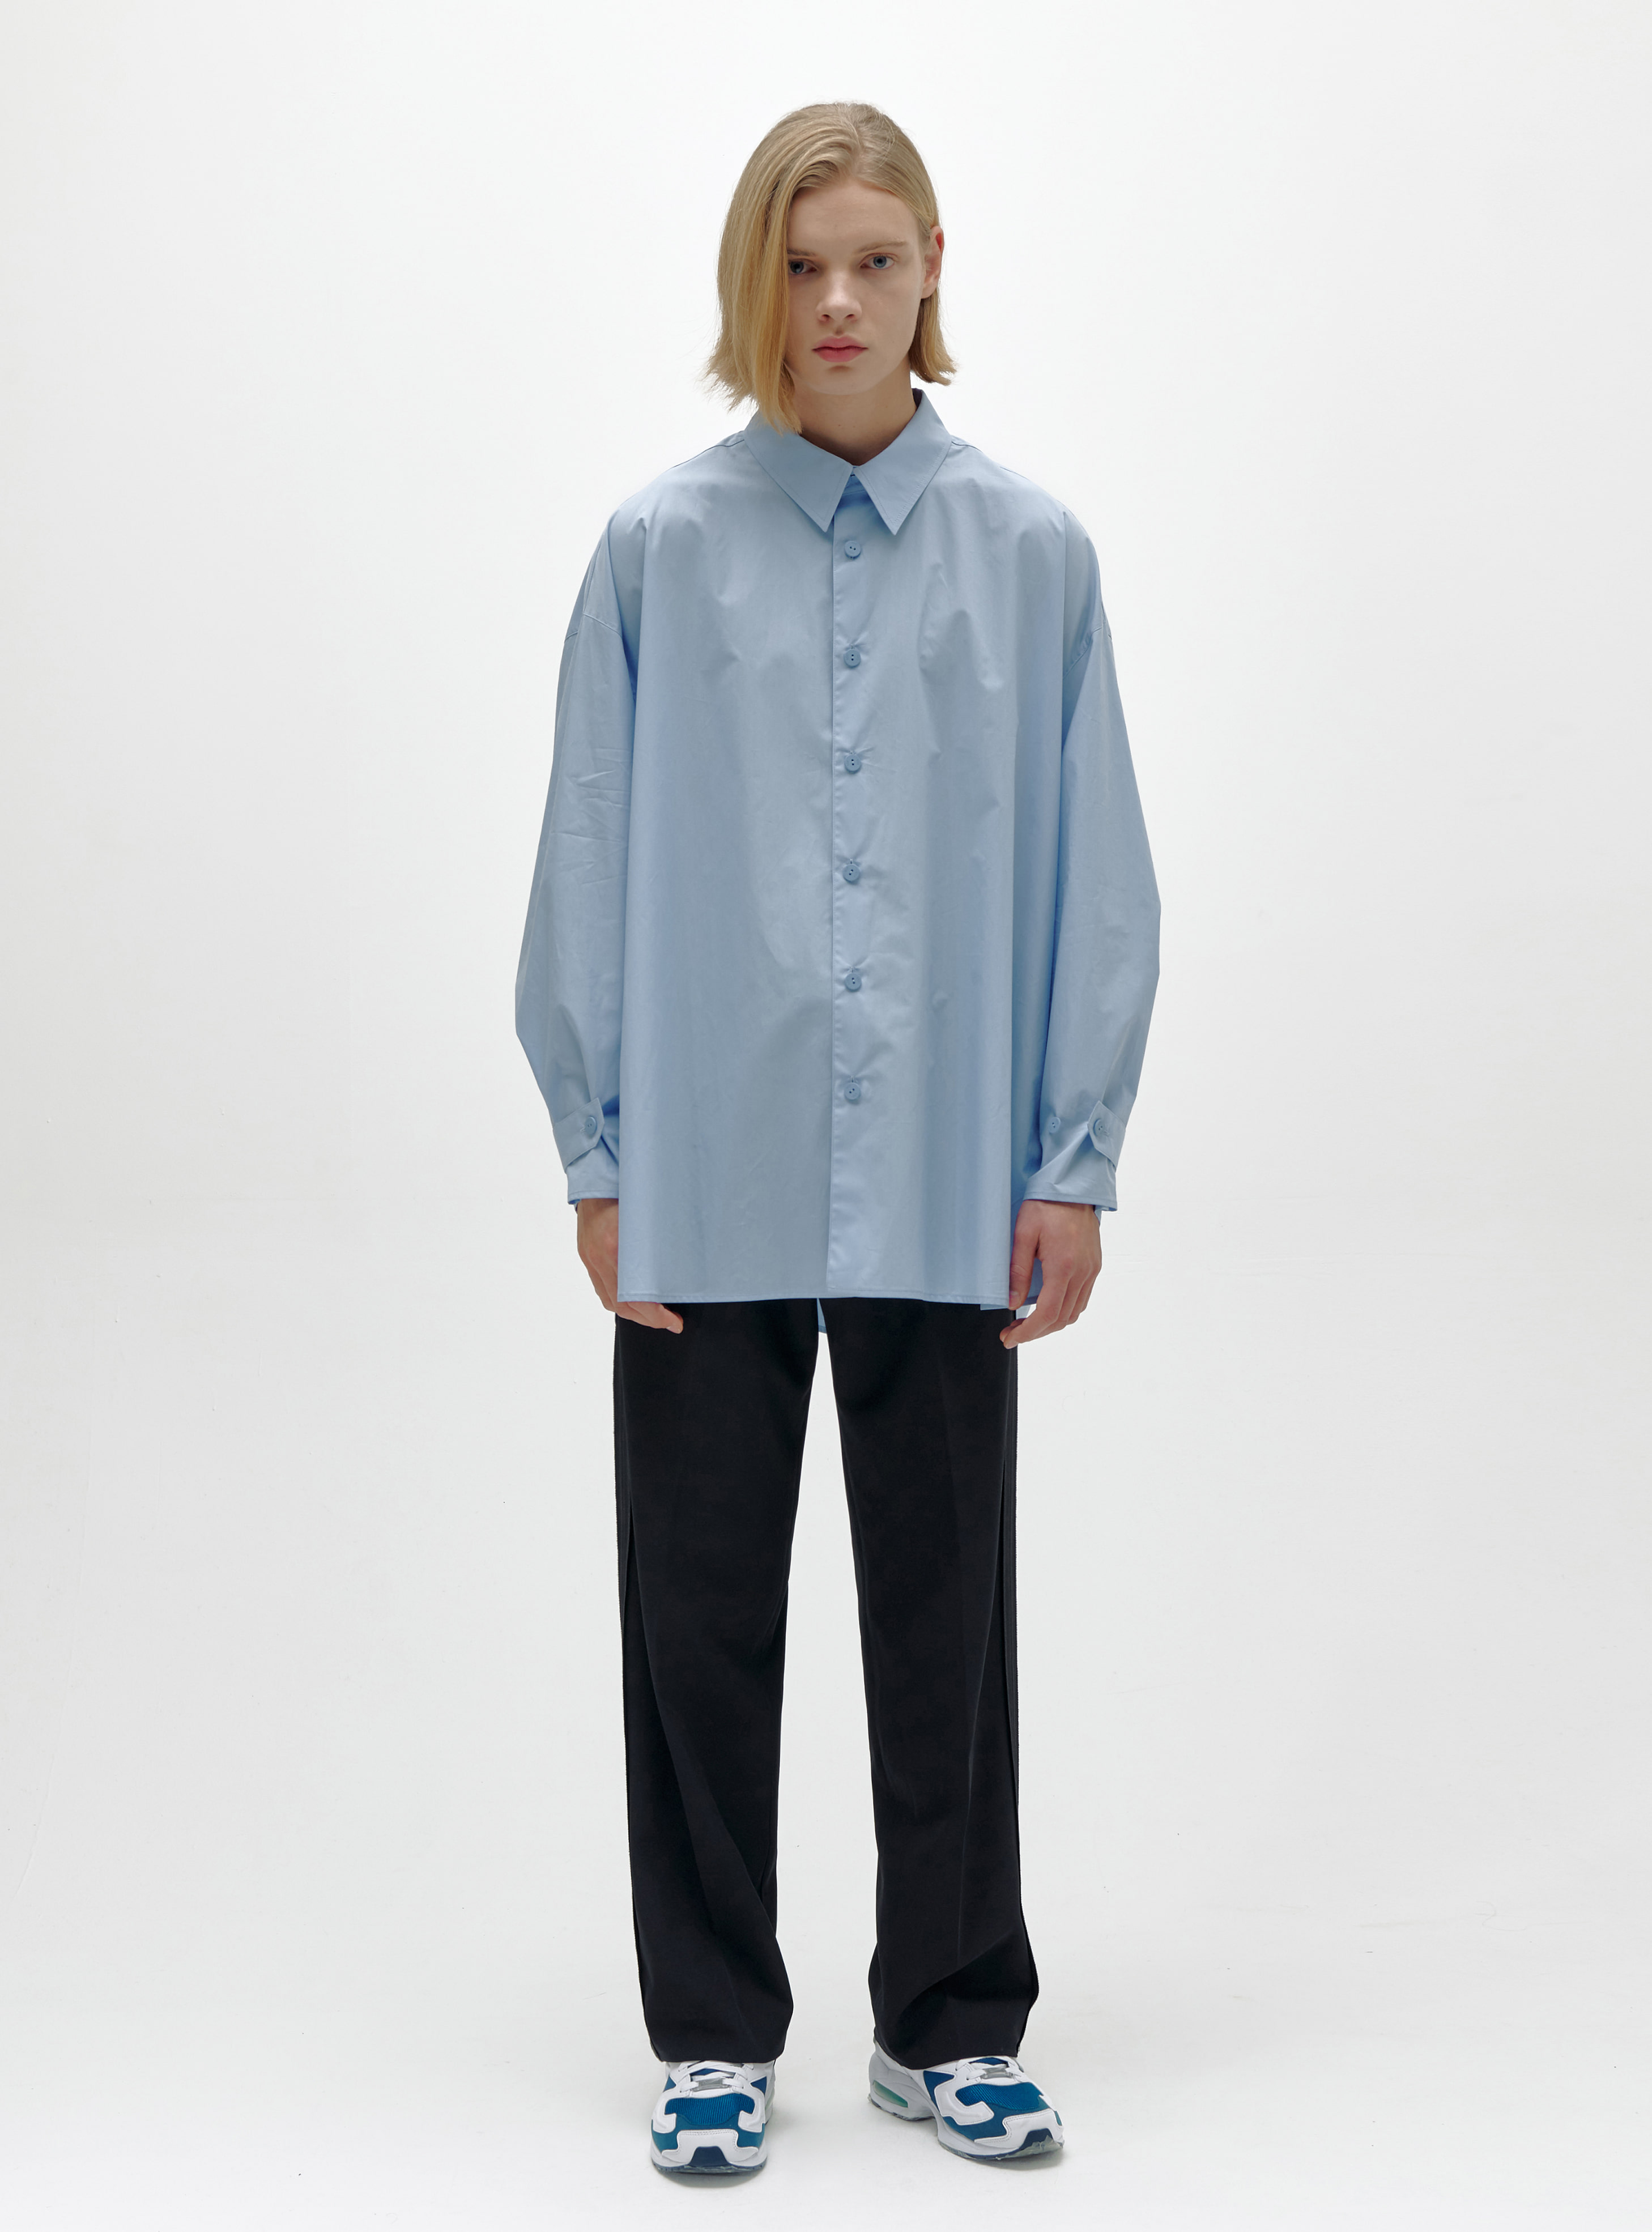 STRAP CUFF SHIRT POWDER BLUE